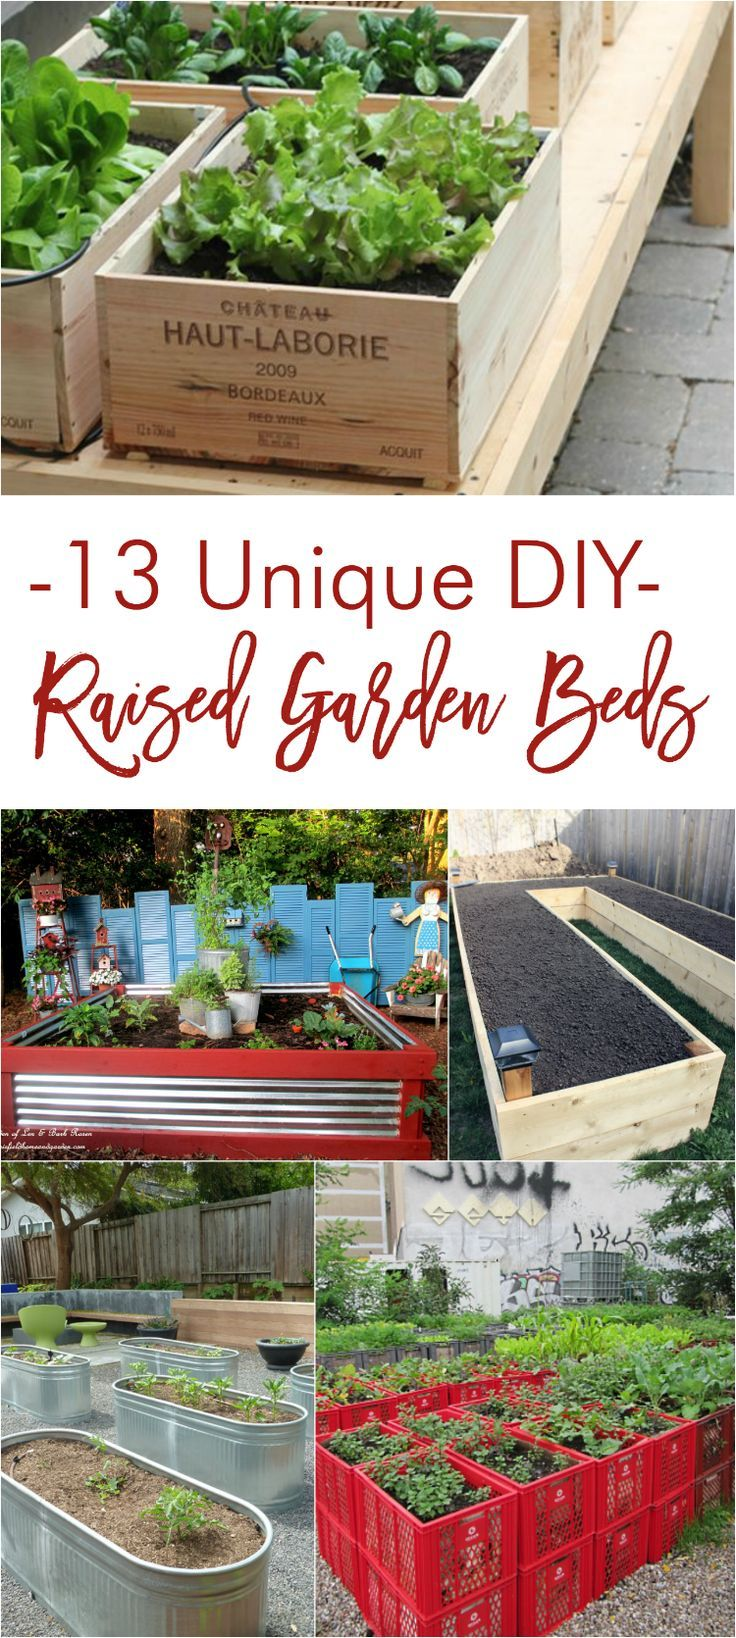 Best 20+ Raised Garden Bed Plans Ideas On Pinterest | Raised Bed Plans,  Raised Gardens And Raised Garden Beds